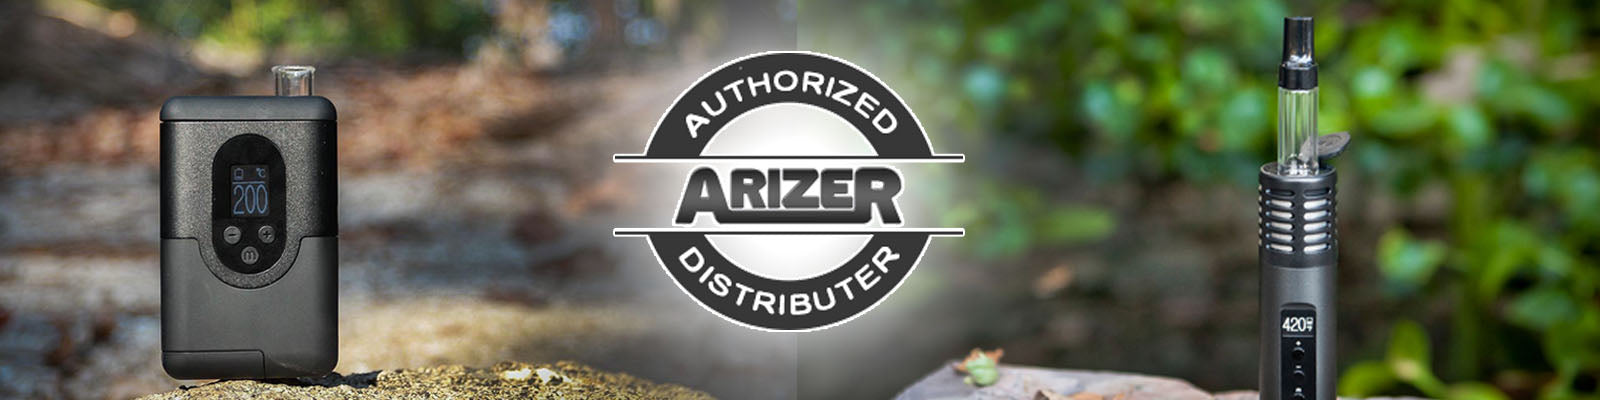 Arizer Vaporizers UK Authorized Seller  Free Shipping